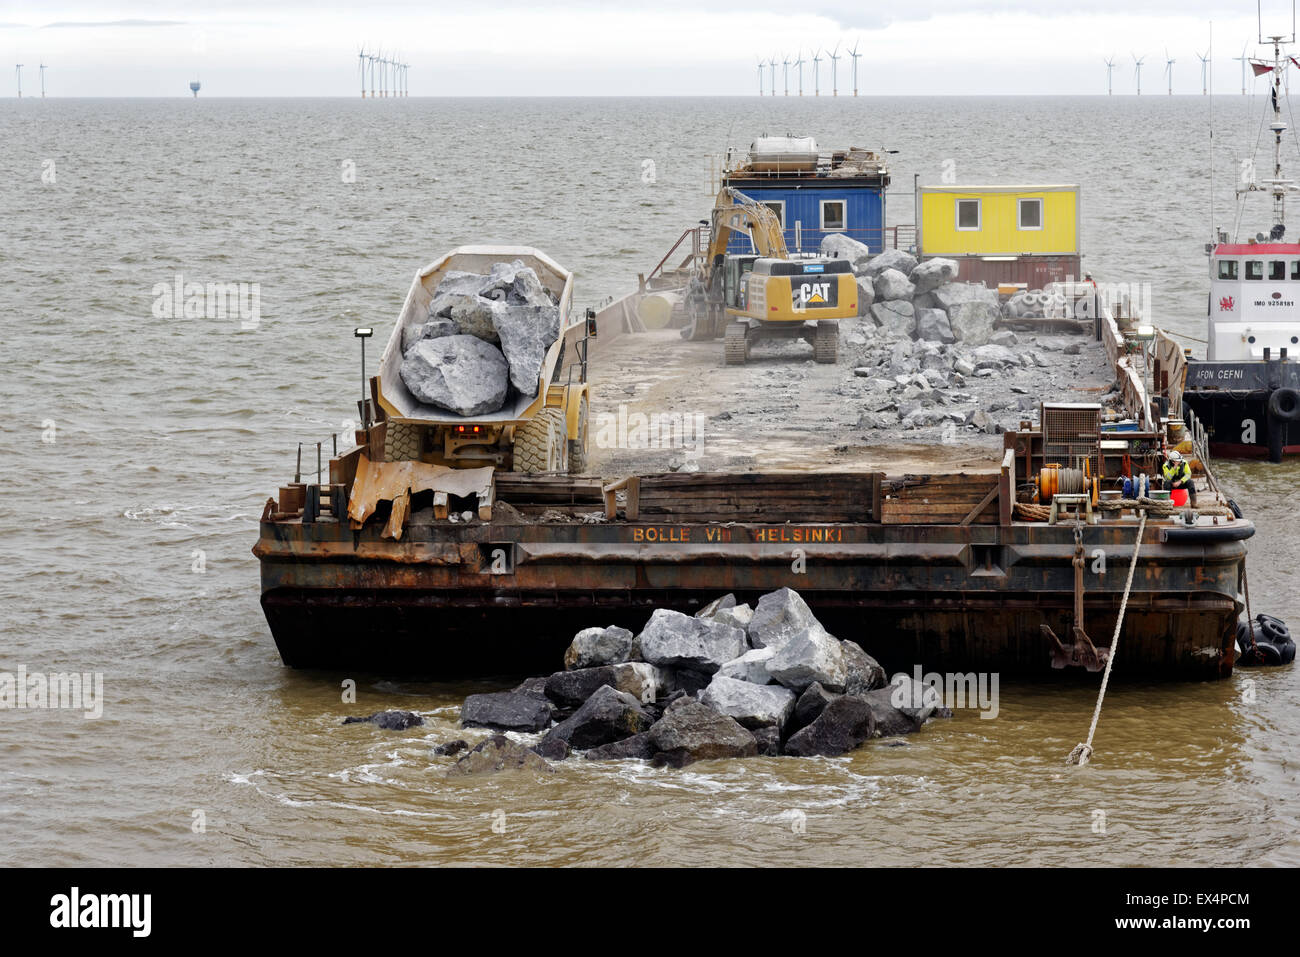 A barge being used to make sea defences -  a lorry dumping huge boulders into the sea to make a breakwater. Clacton - Stock Image